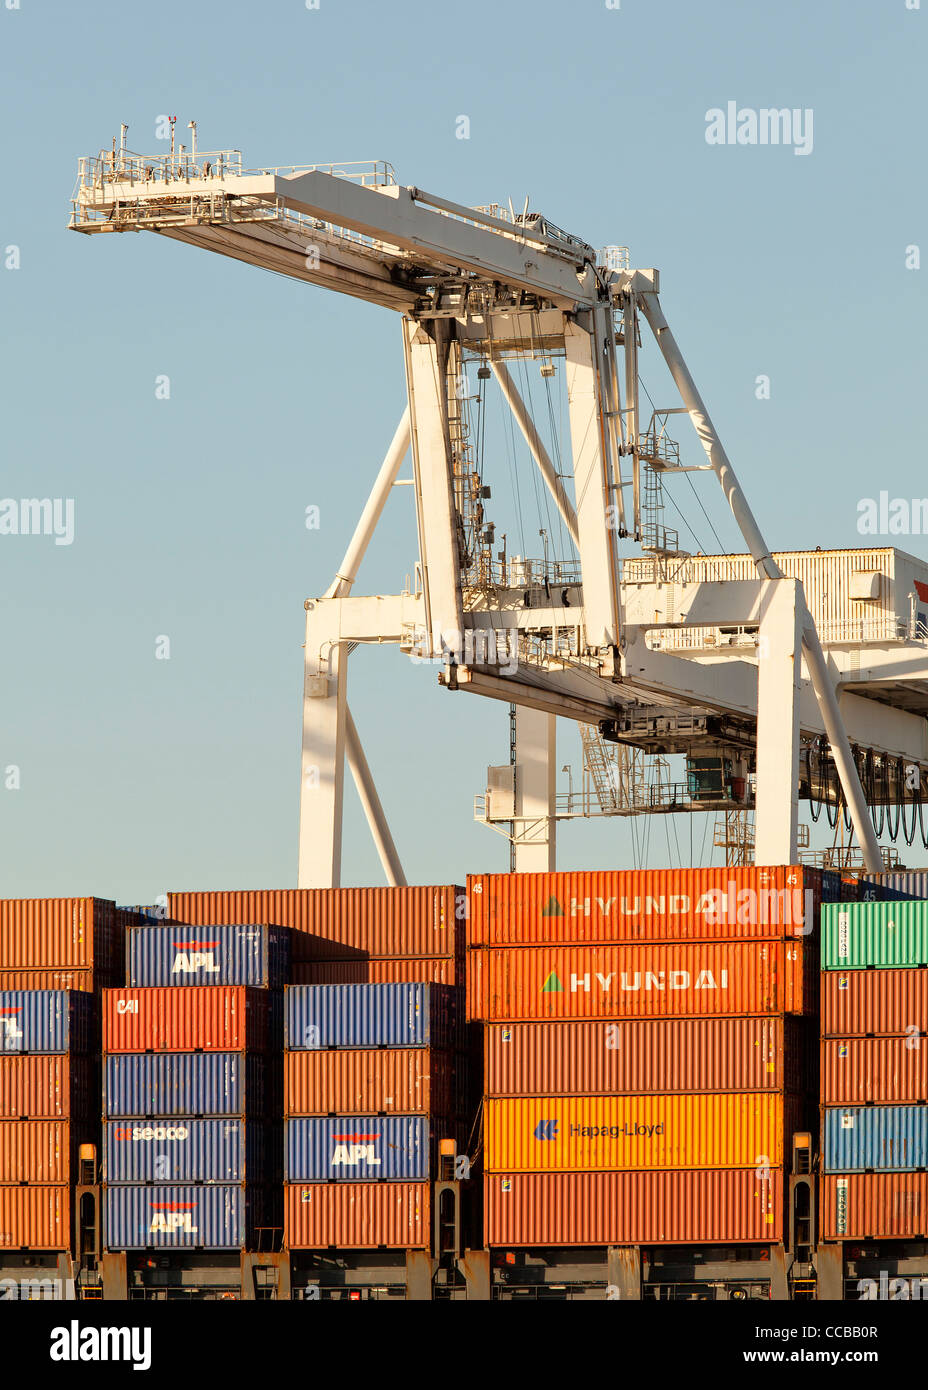 Gantry crane ready to unload cargo containers from ship at Port of Oakland - Stock Image